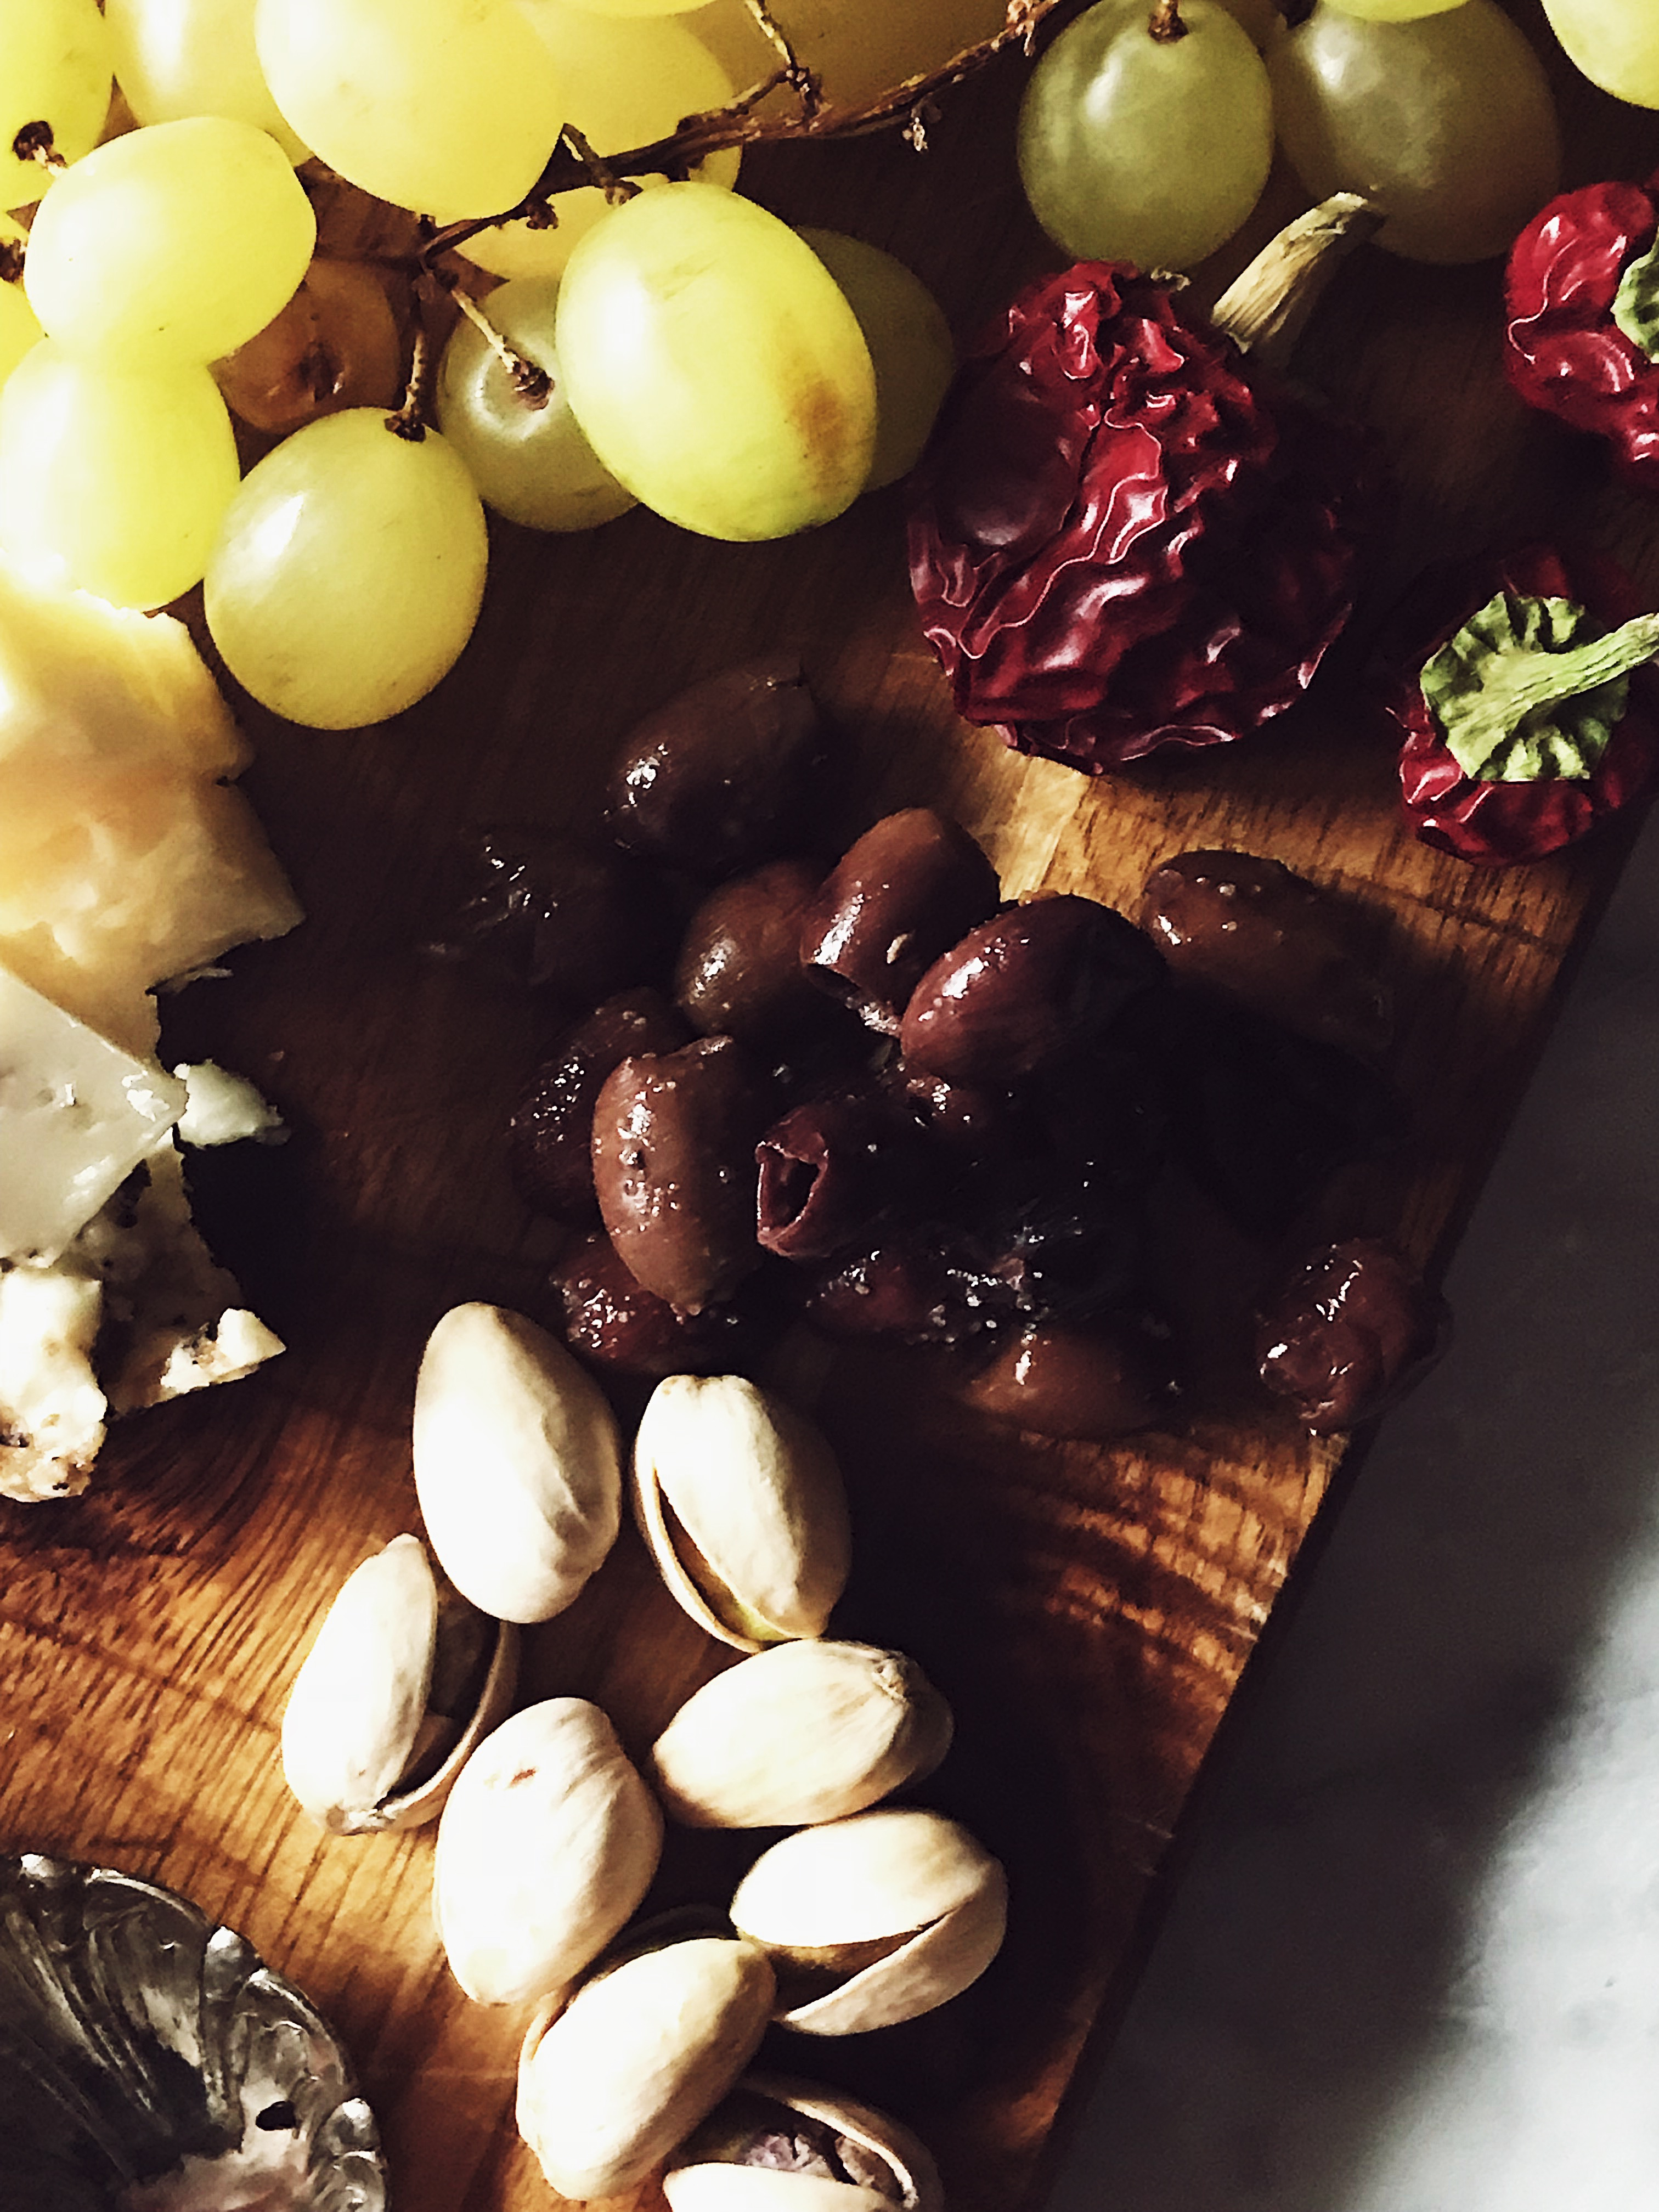 cheeses, grapes, olives, and pistachios on a wood cheese board